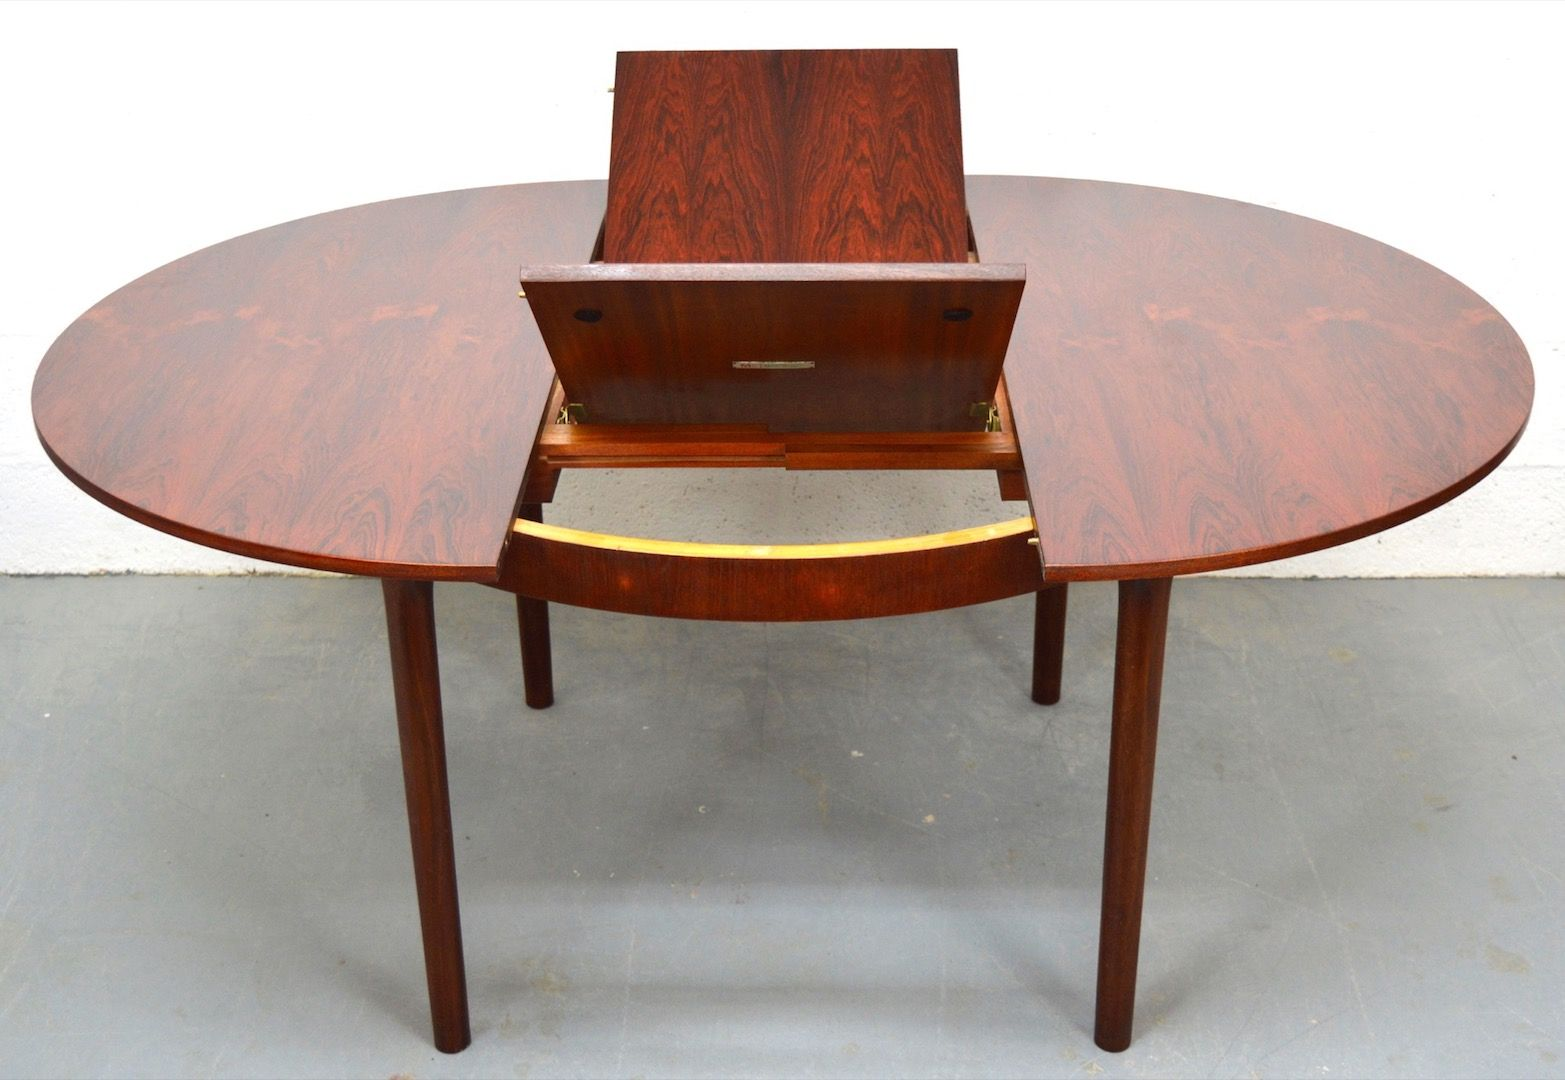 Vintage Rosewood Extendable Dining Table from McIntosh for  : vintage rosewood extendable dining table from mcintosh 3 from www.pamono.com size 1565 x 1080 jpeg 255kB